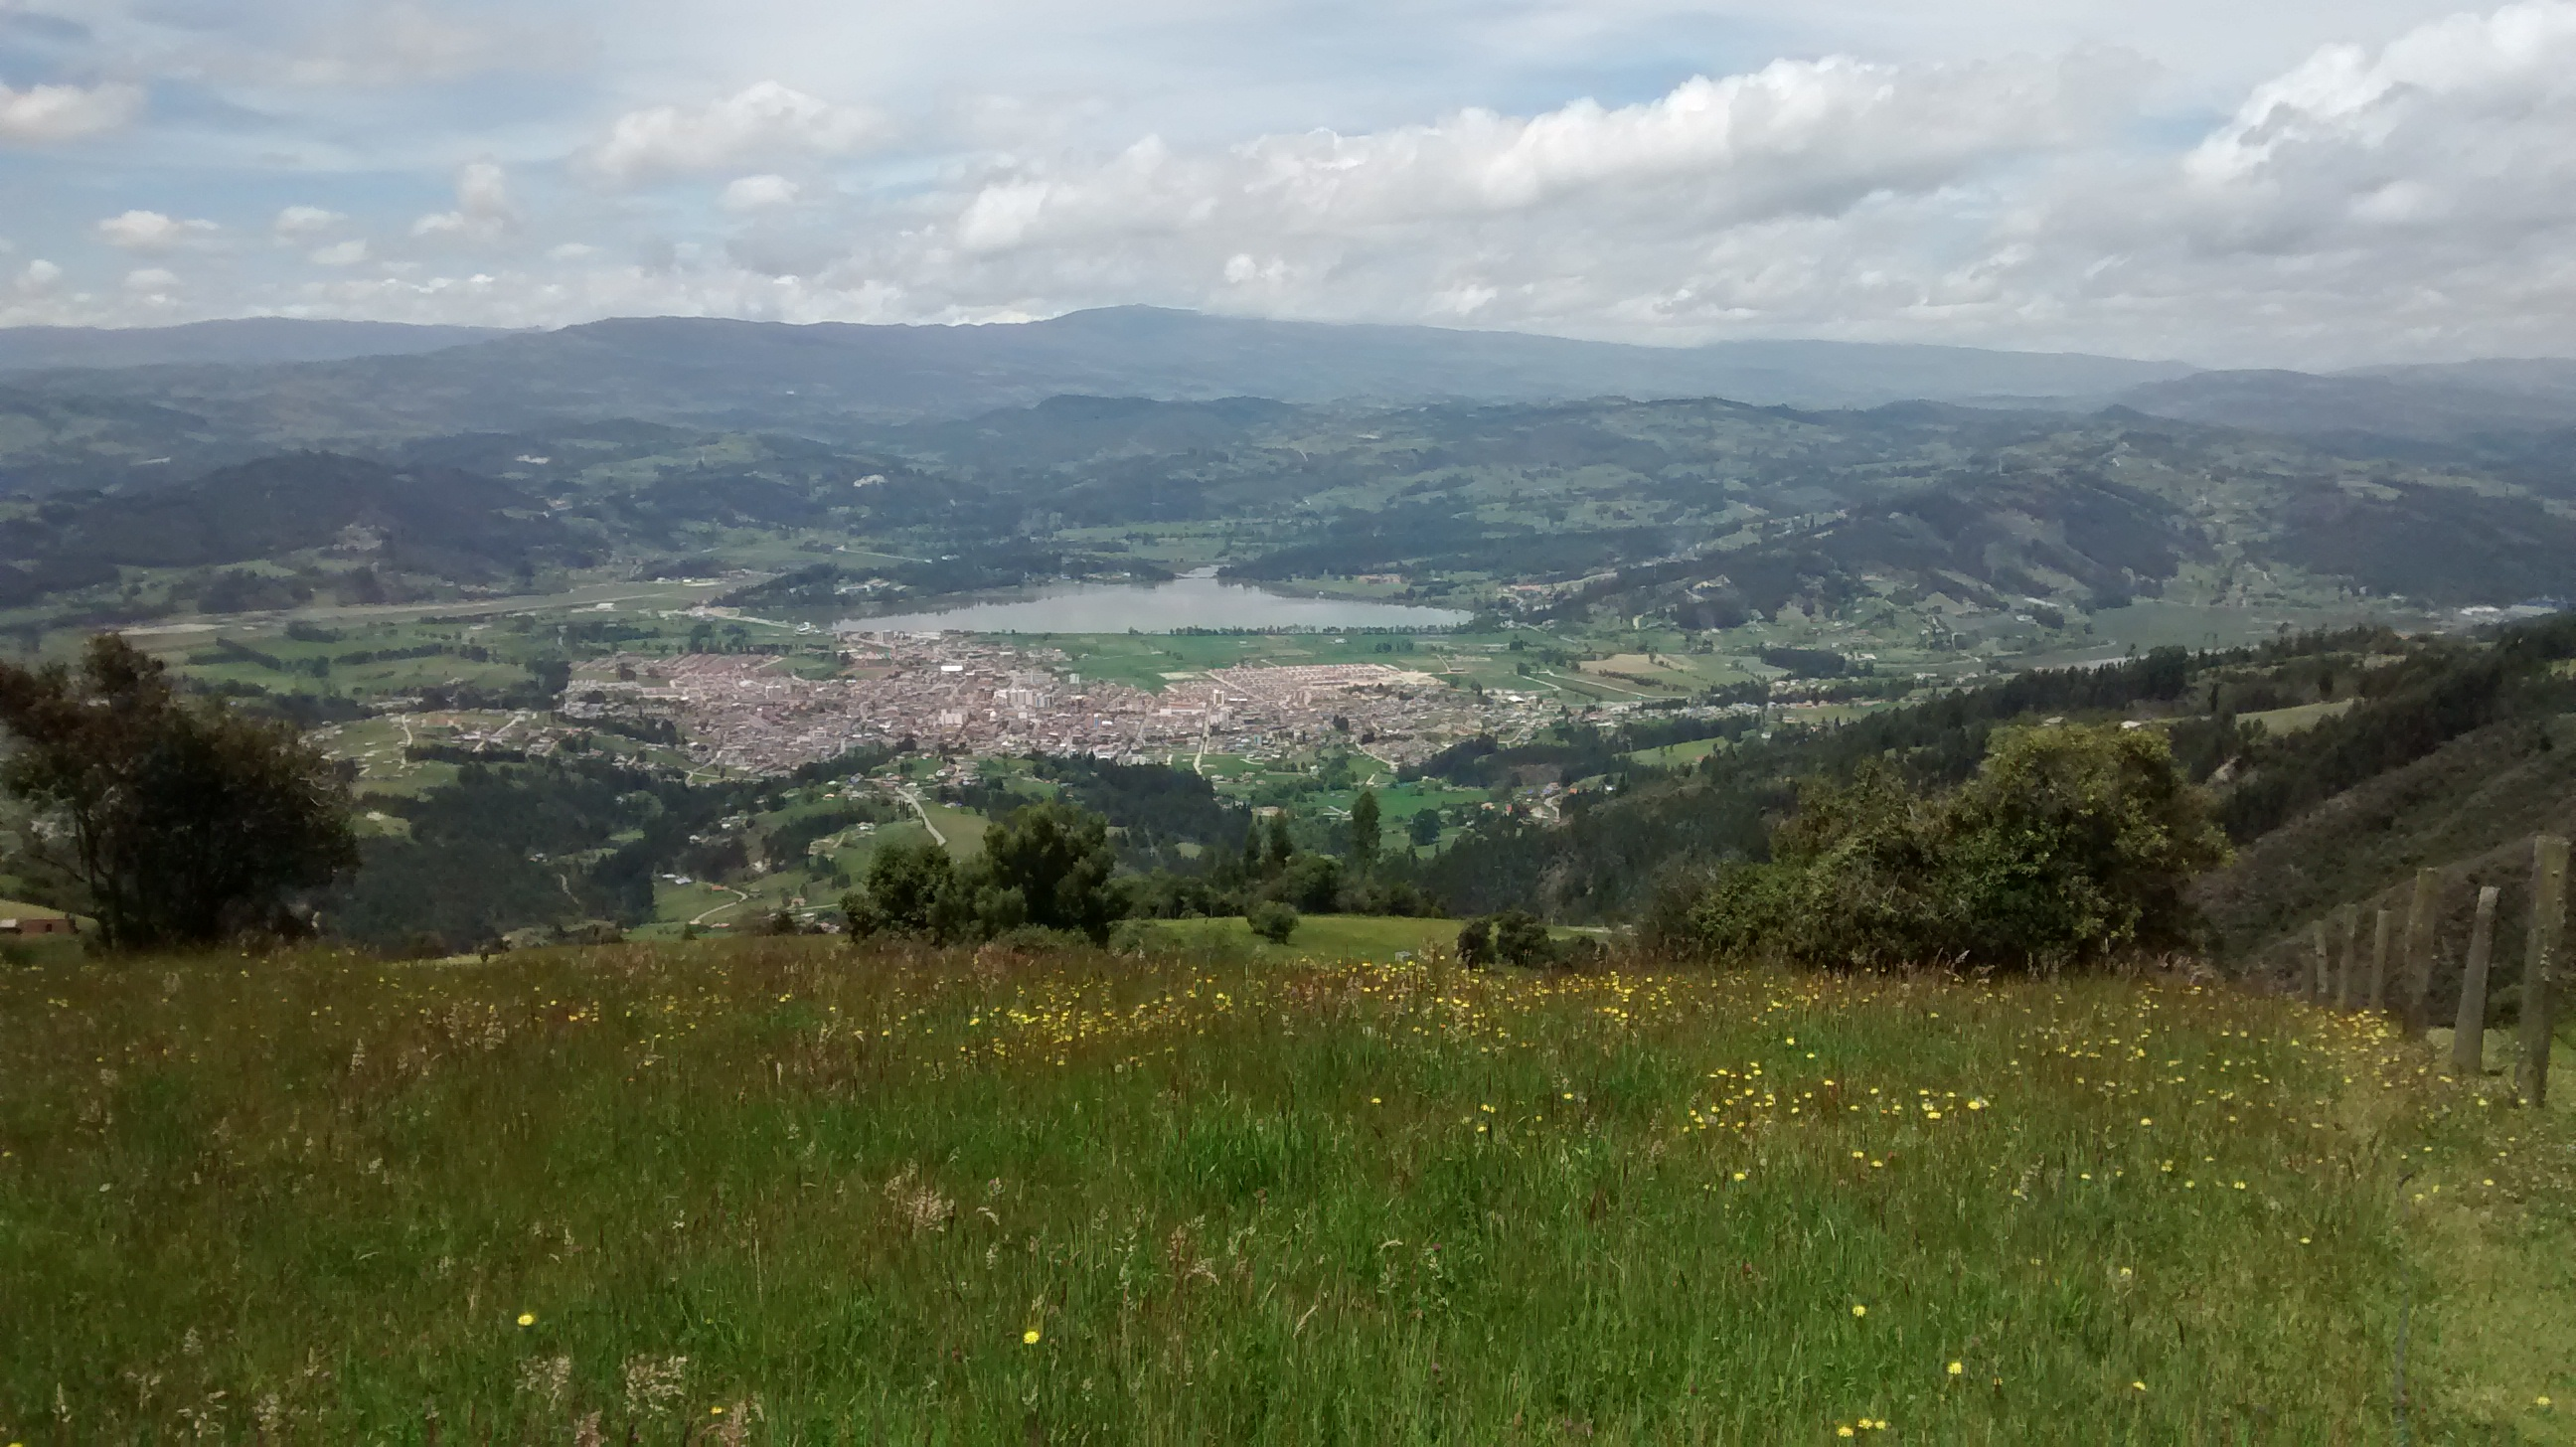 A view of Paipa, Boyacá, Colombia from the hills to the north ...